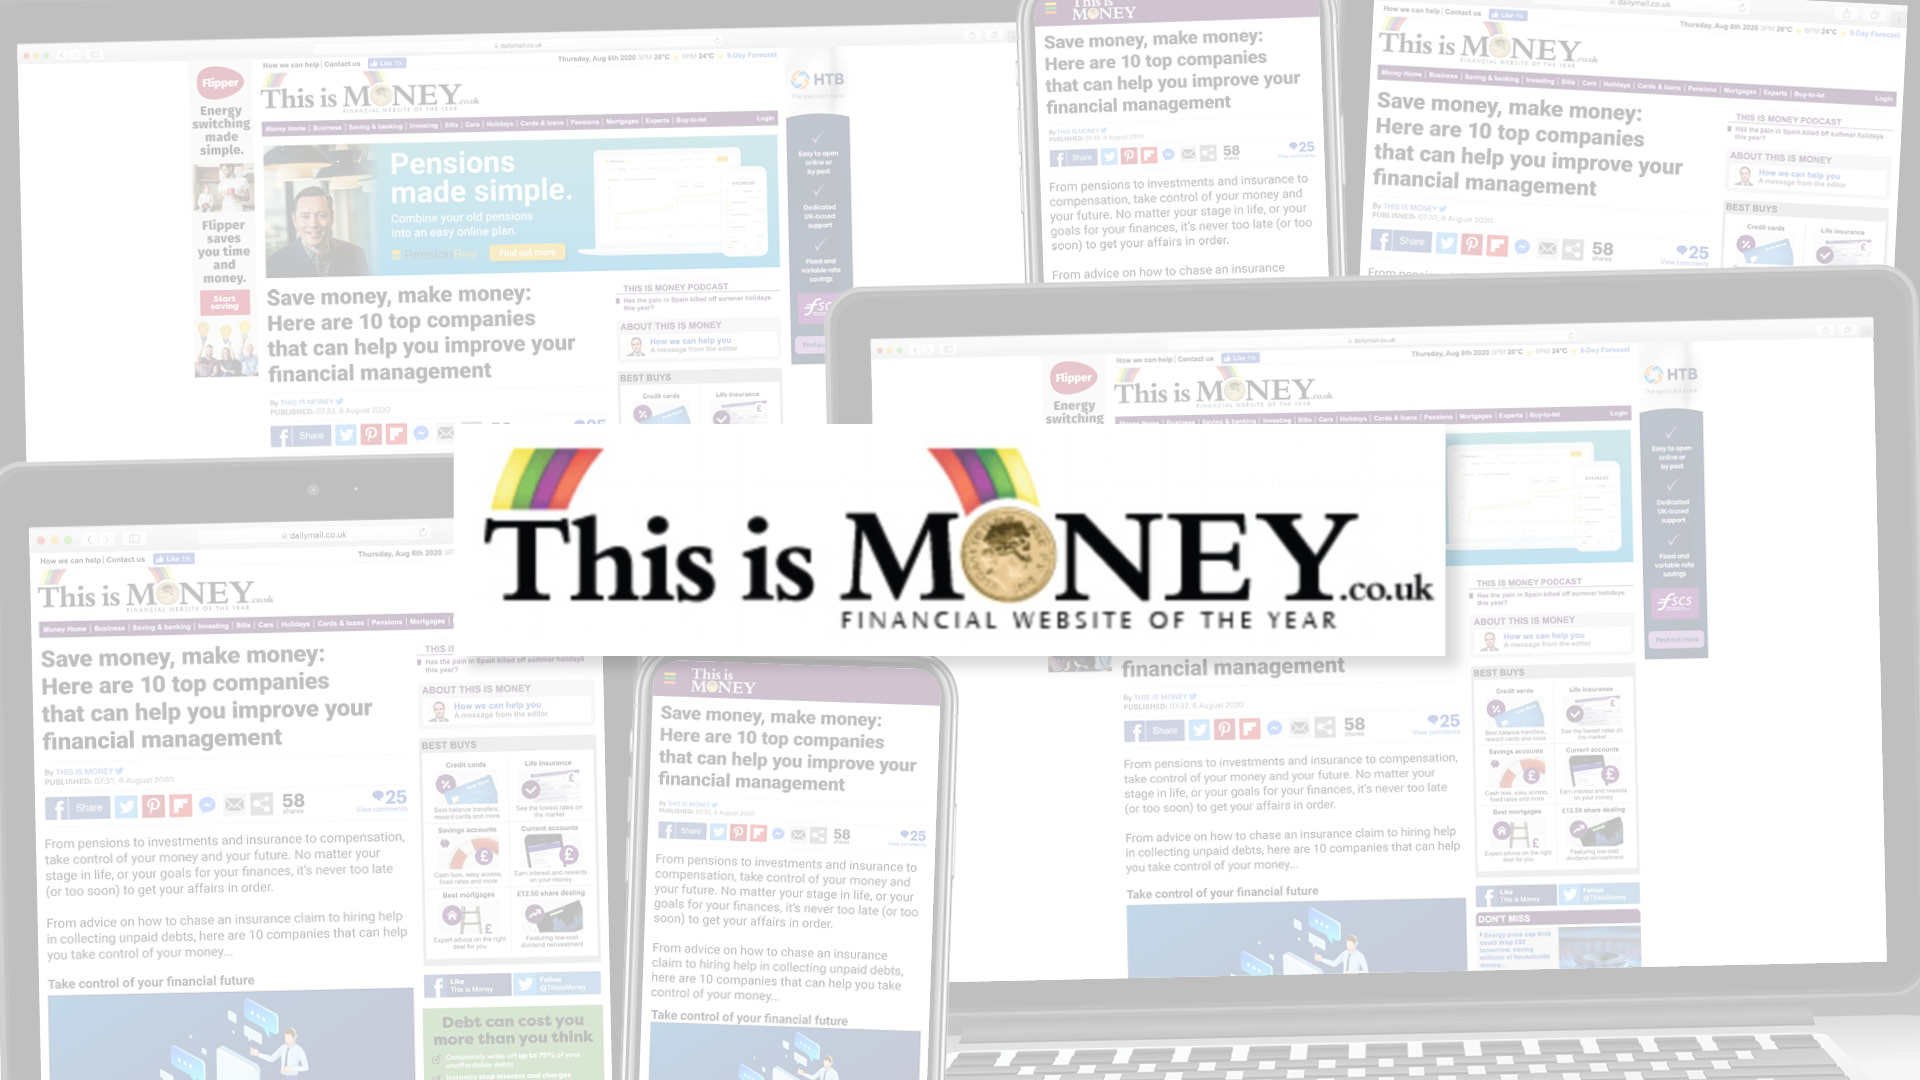 NEW THIS IS MONEY PARTNERSHIP TO BOOST FINANCE BRANDS